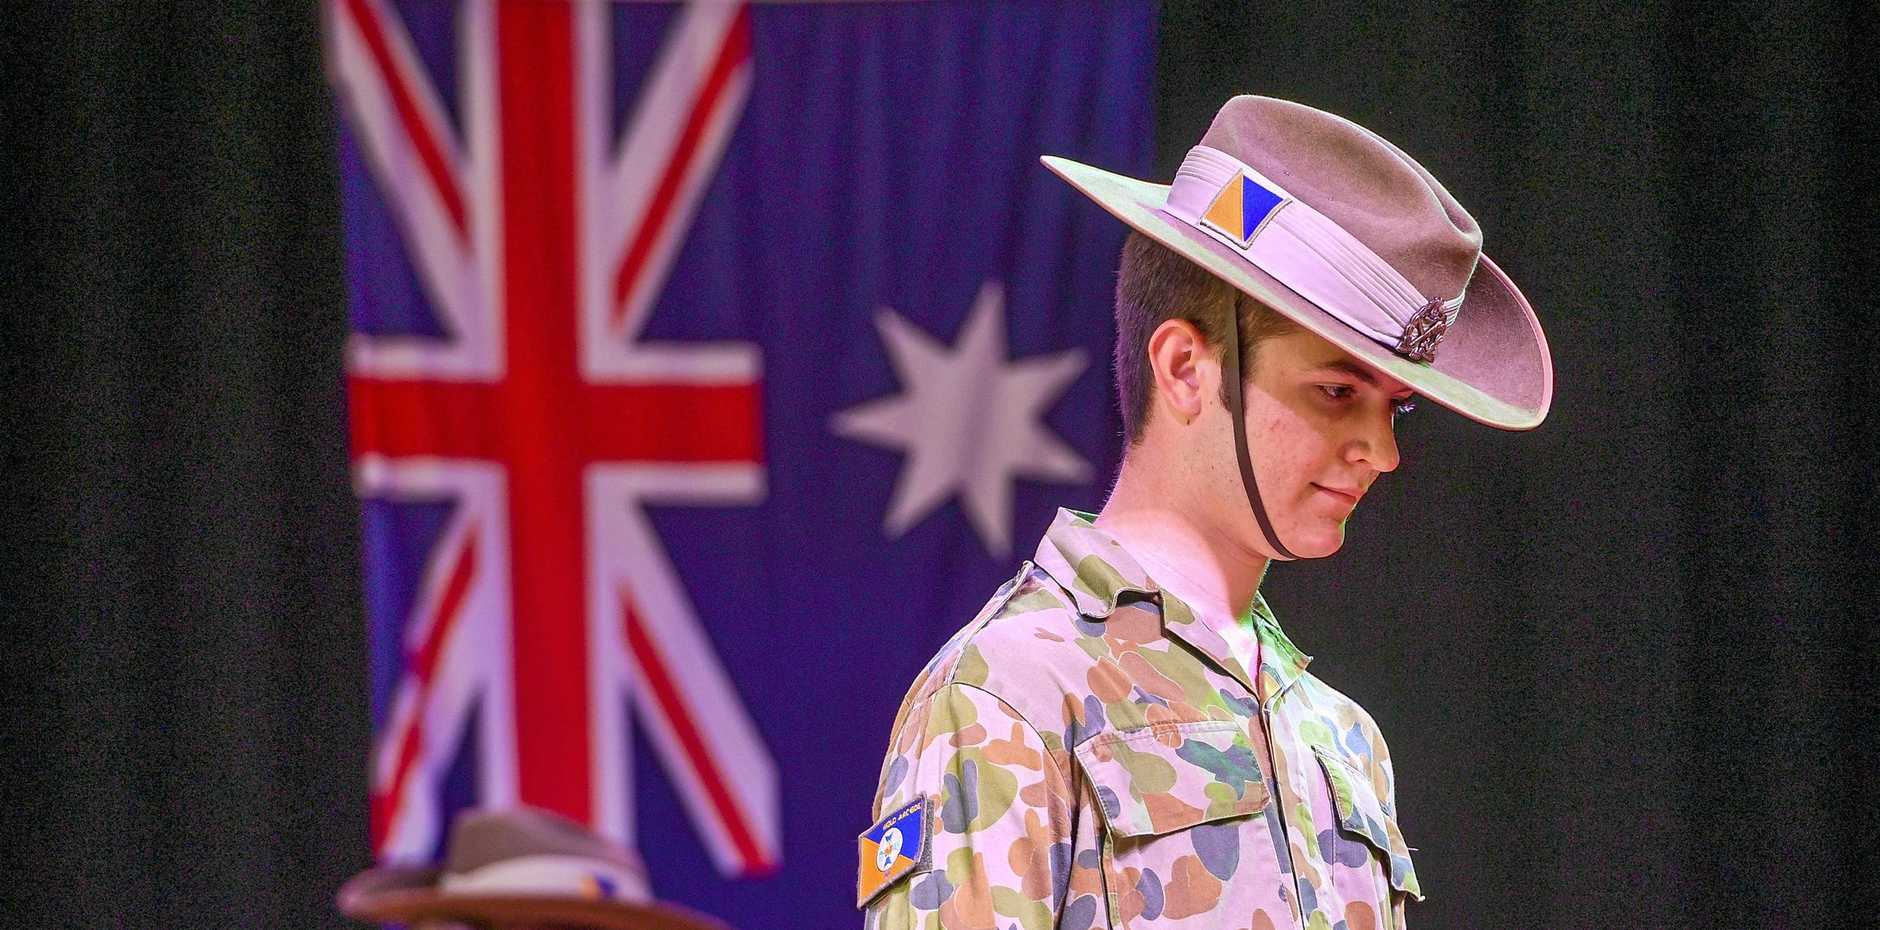 Cdt Thomas Clark at Gladstone State High School's Anzac day ceremony, 2019 for senior students.